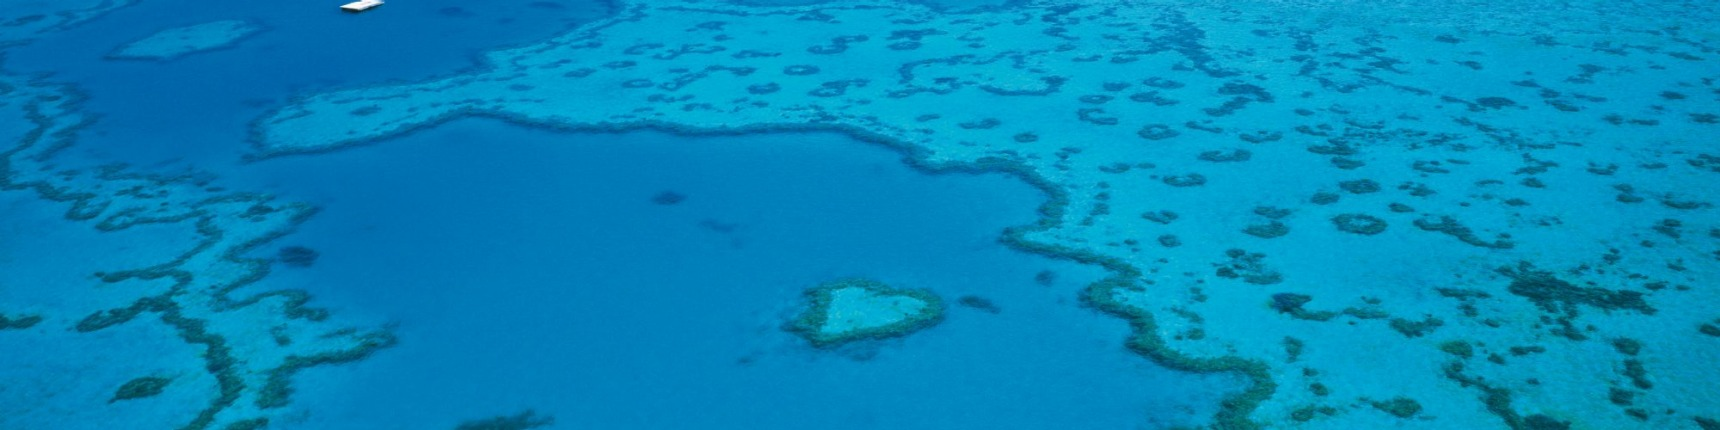 great barrier reef queensland